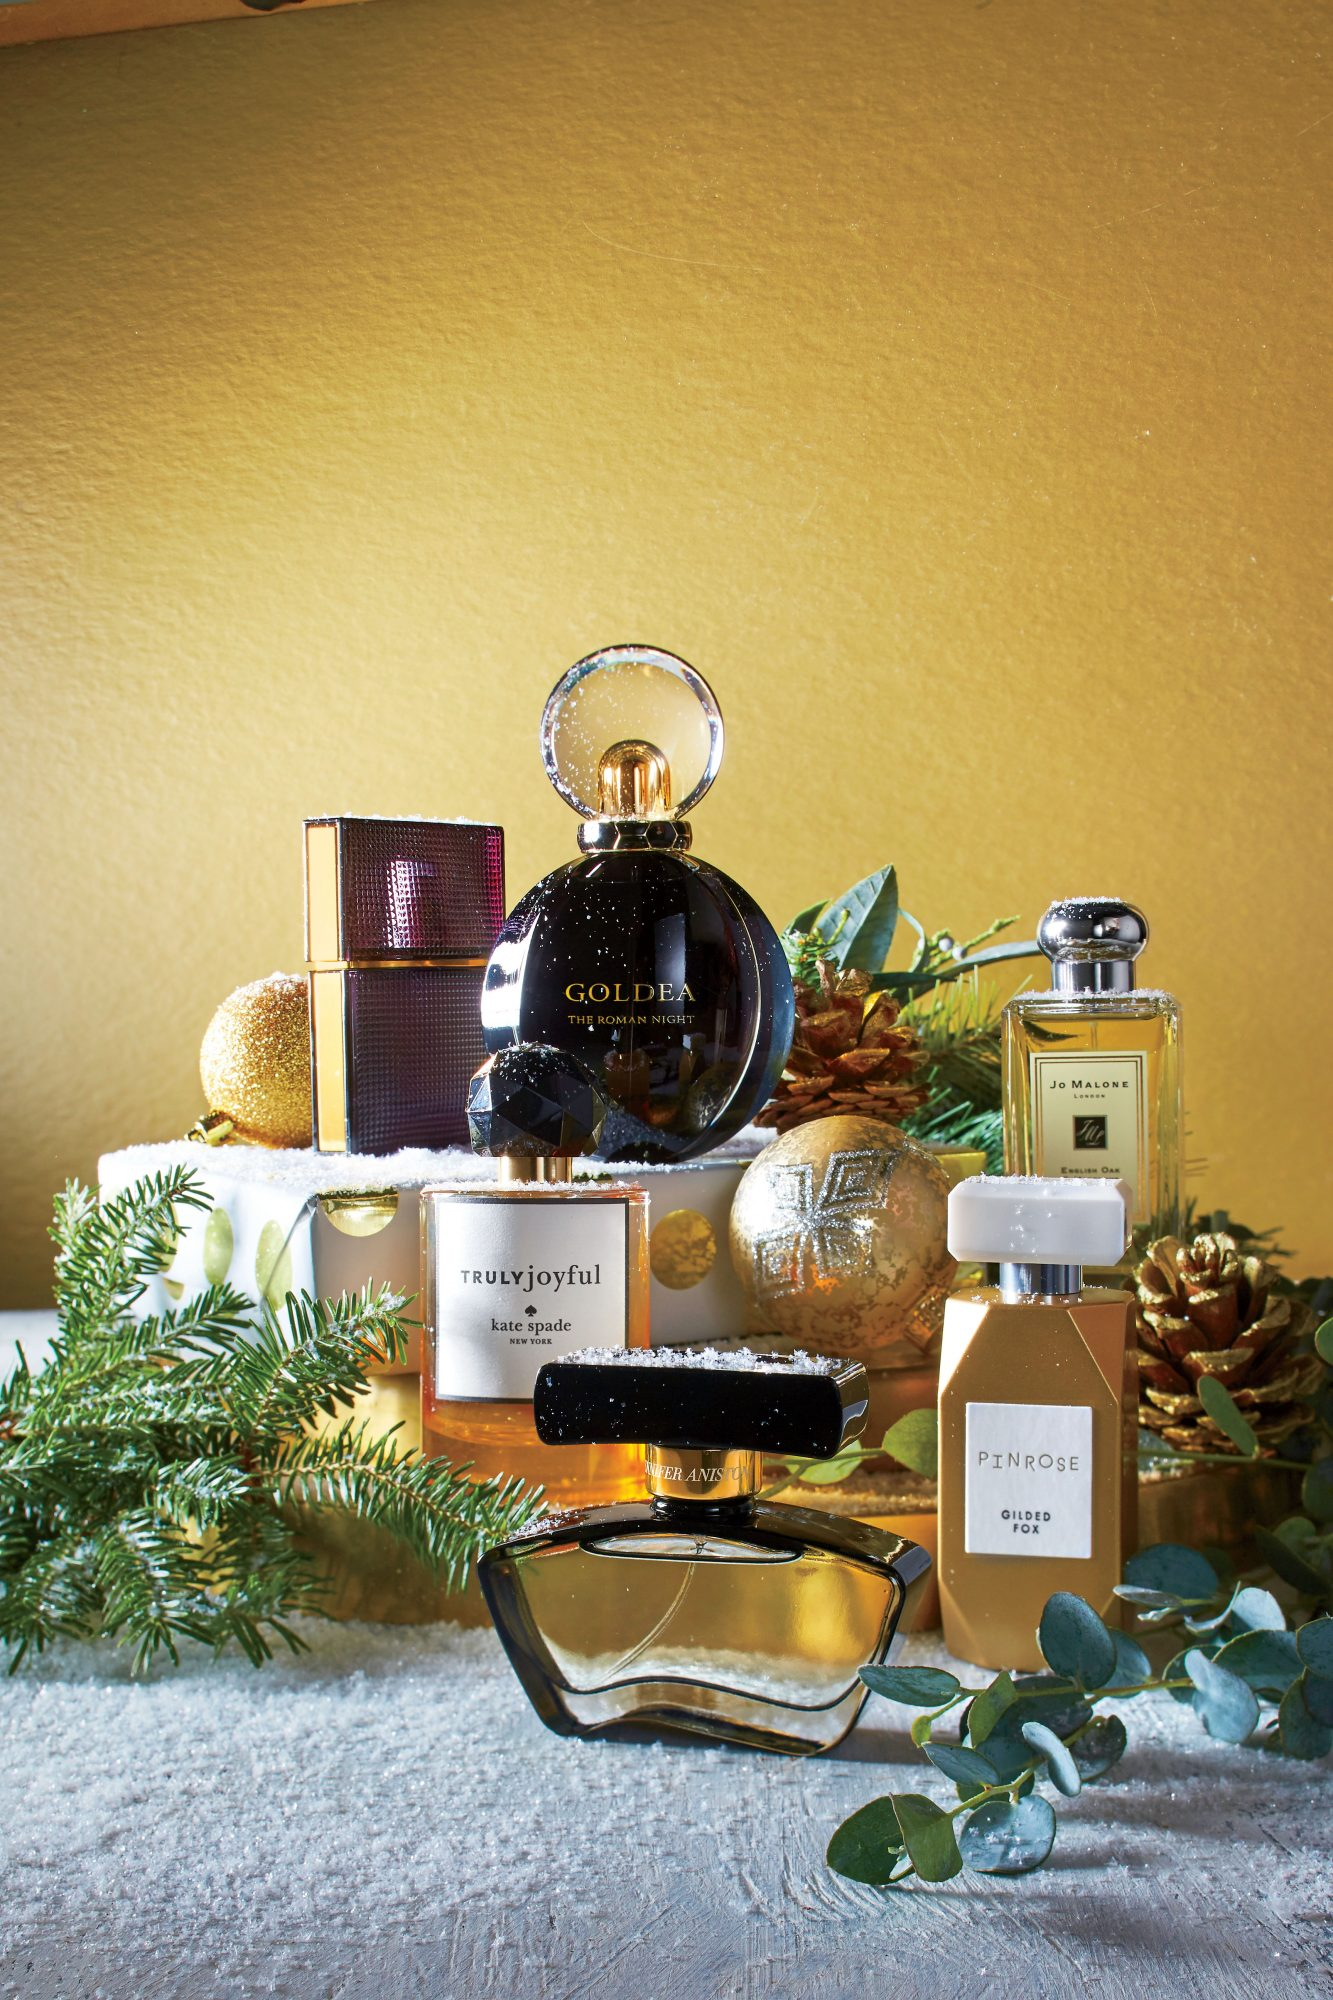 Spicy Holiday Scents